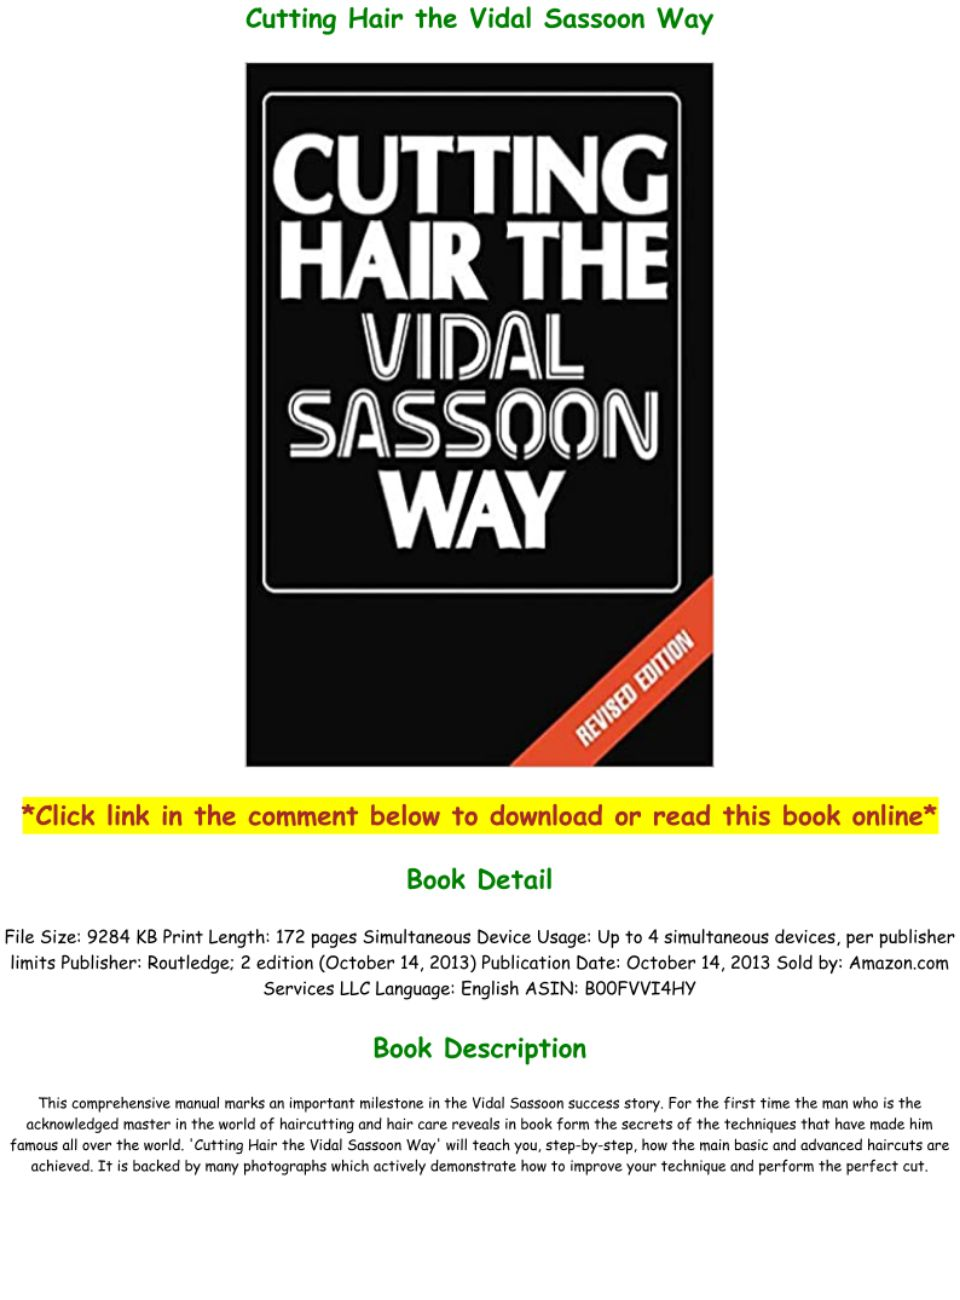 PDF] D.O.W.N.L.O.A.D Cutting Hair the Vidal Sassoon Way Full-Acces